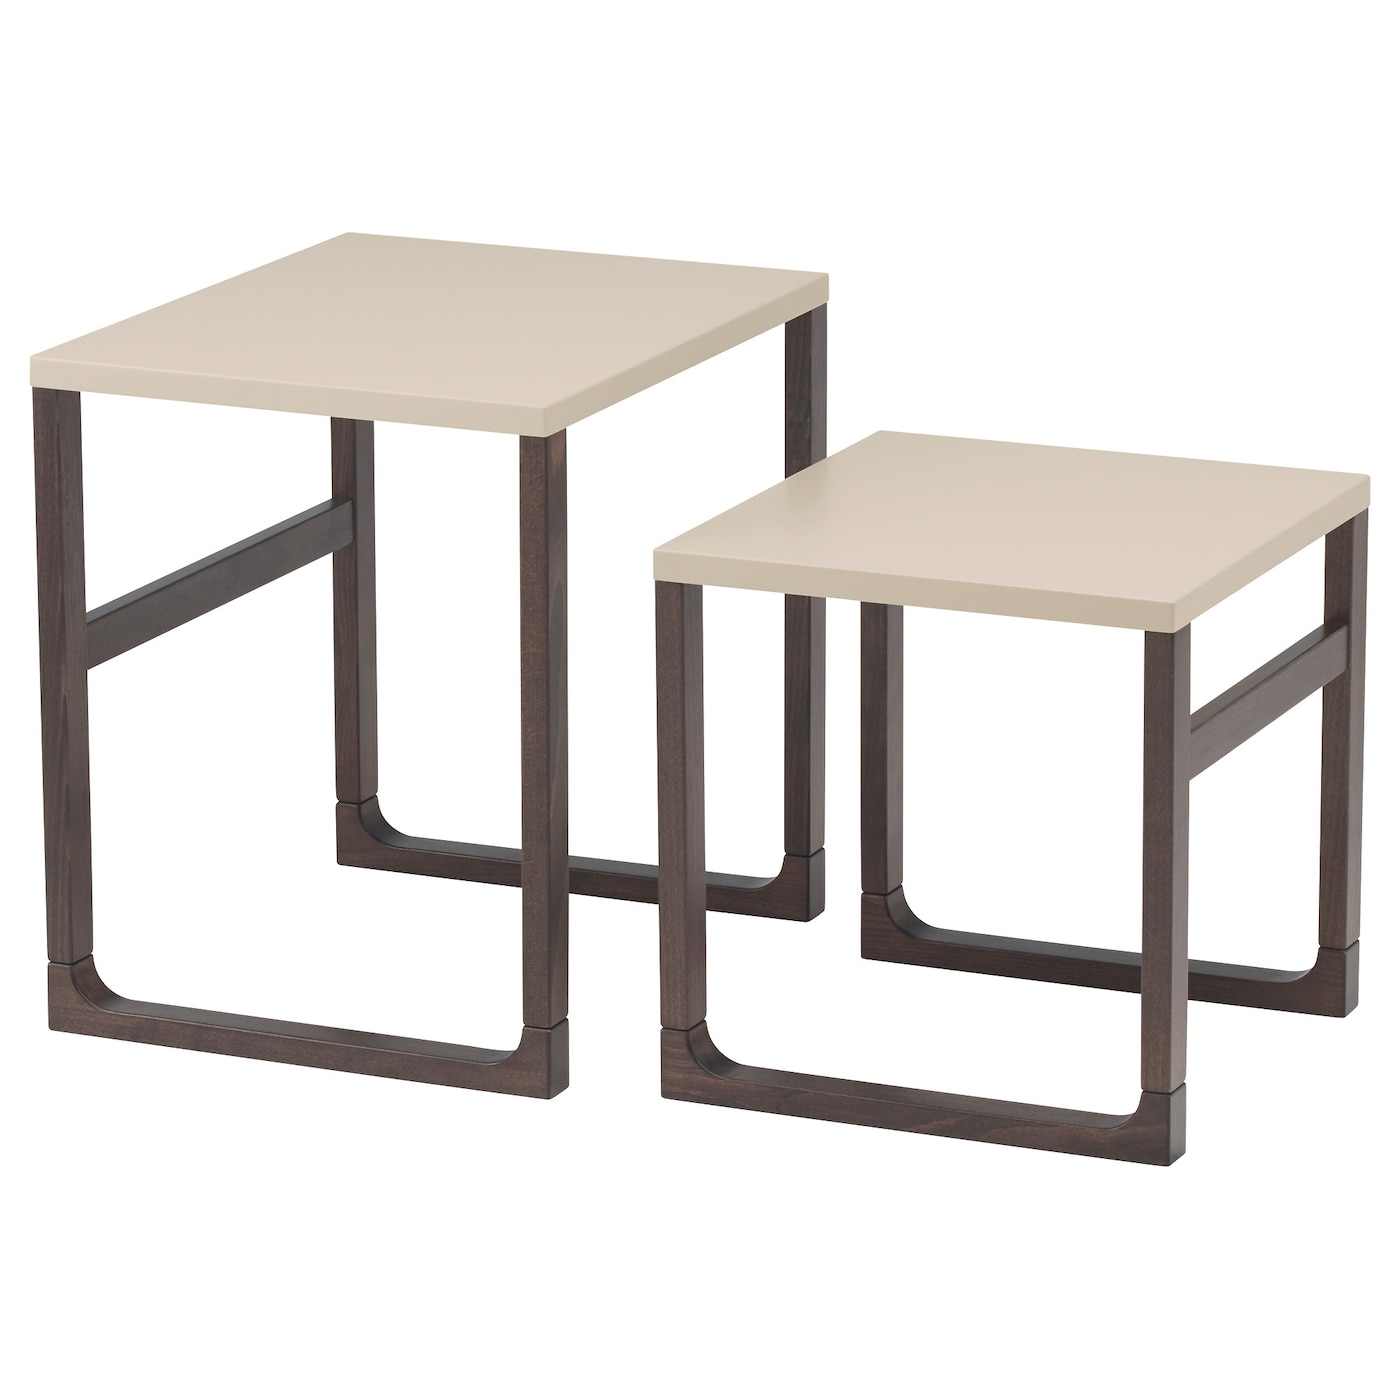 Side Tables & Nest of Tables